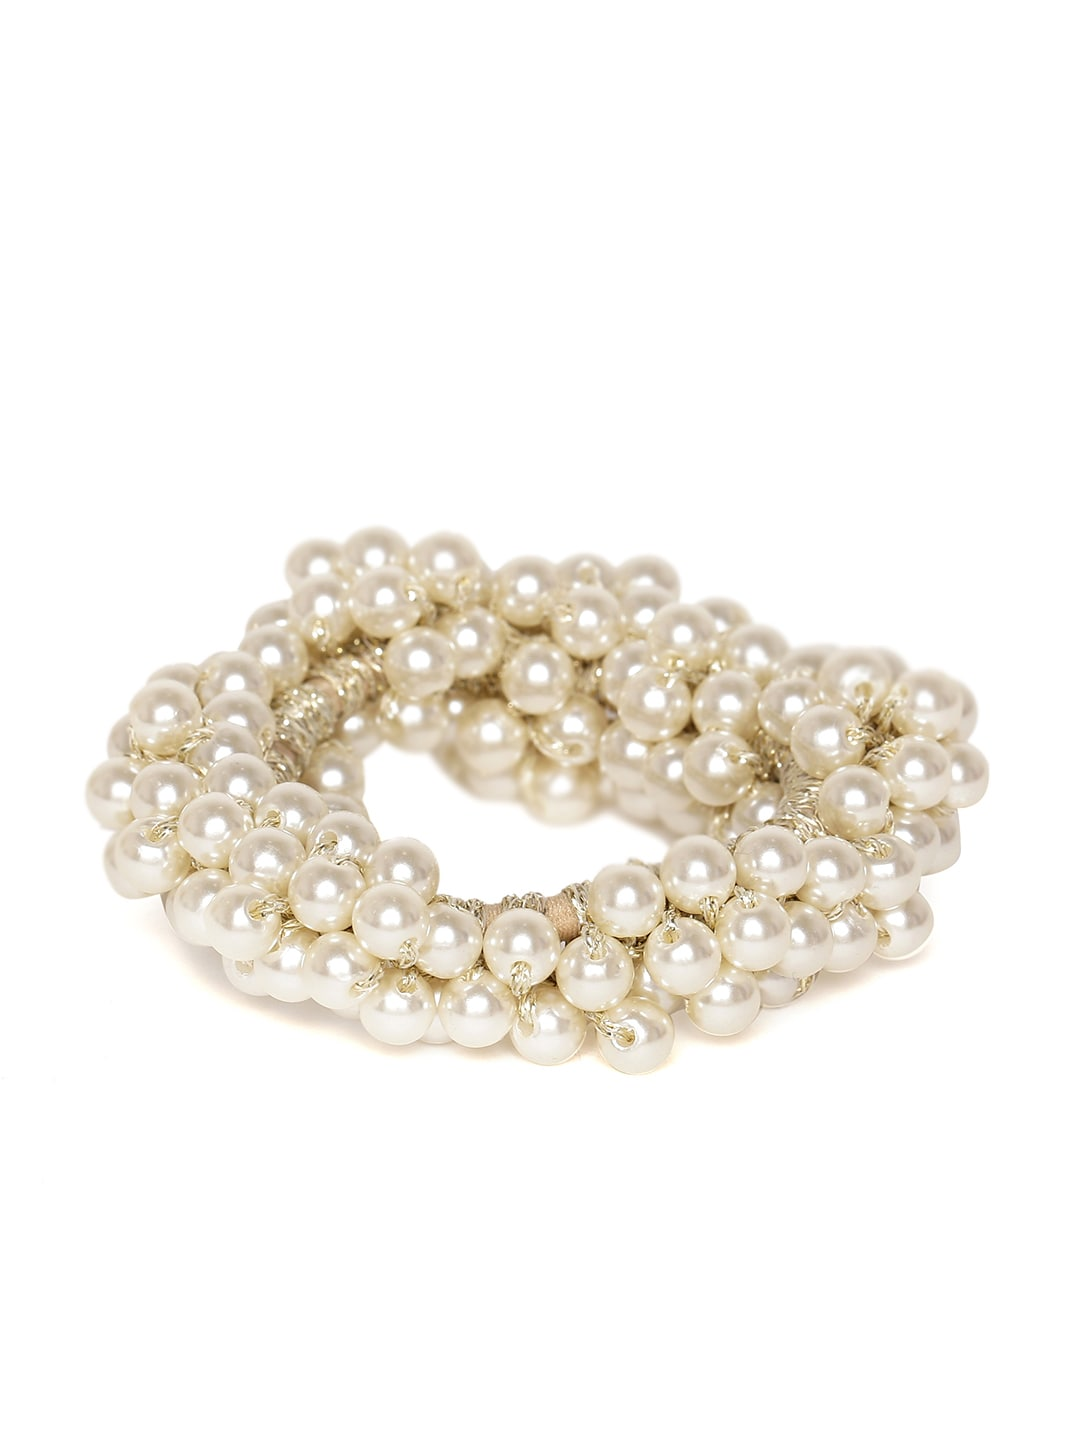 hair accessories buy hair accessories for women girls online hair accessories buy hair accessories for women girls online myntra